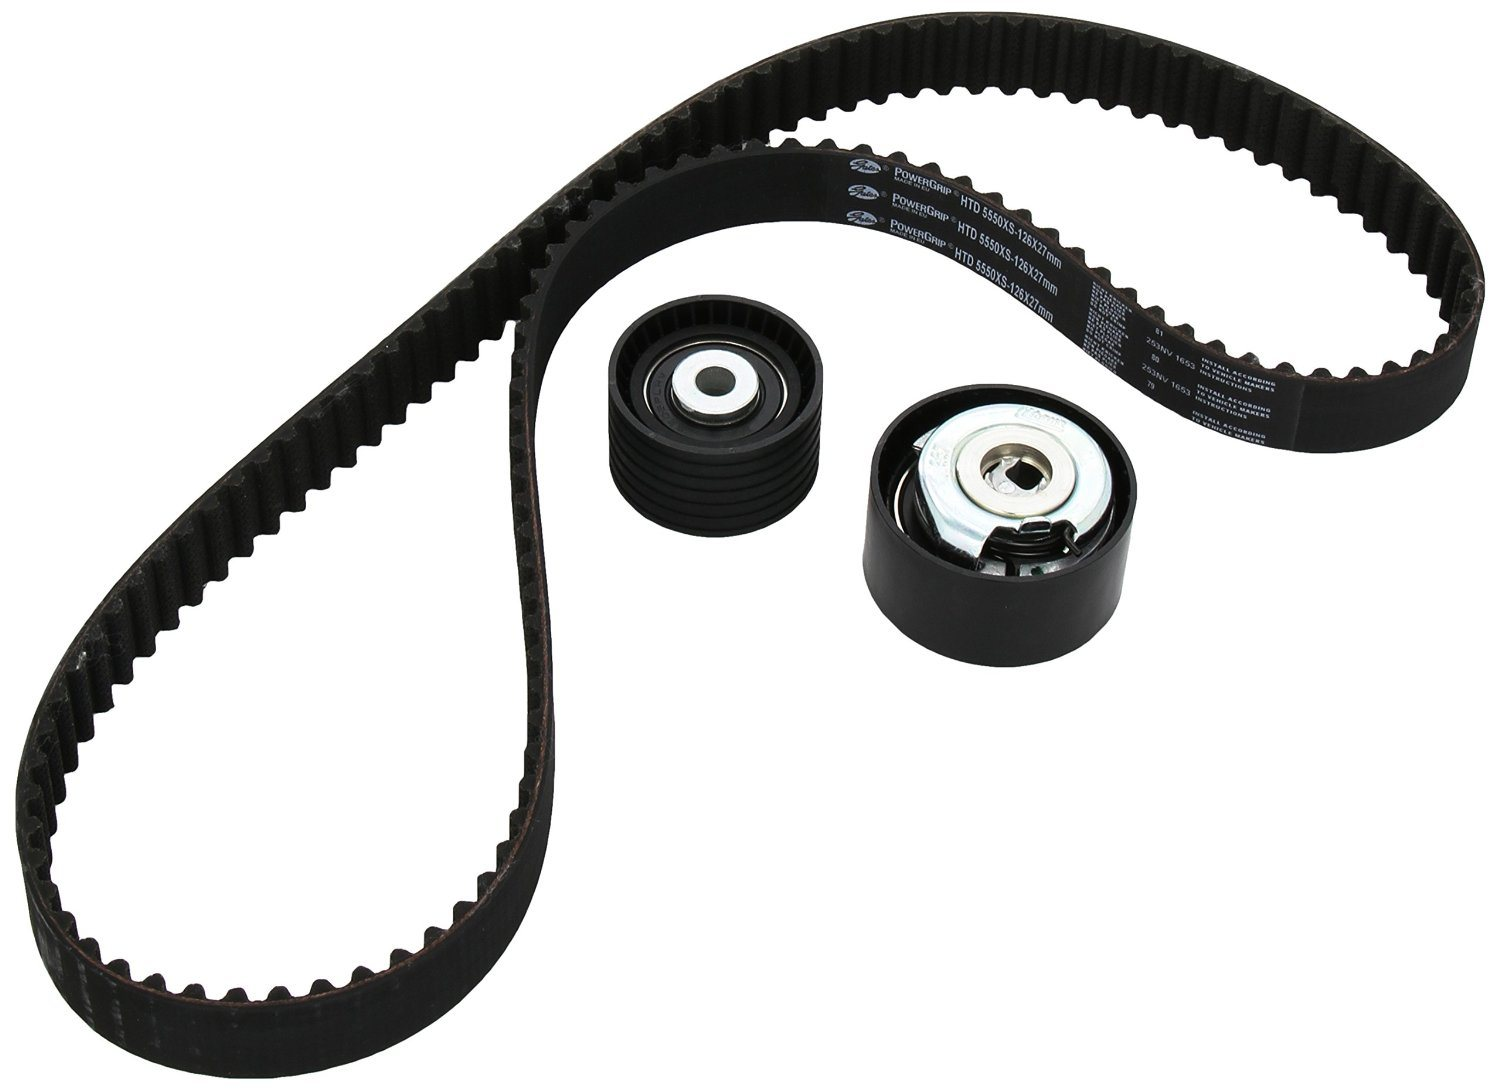 China Timing Belt Kit Vkma06104 for Renault F4r760 / F4r761 2.0 16V - China  Timing Chain Kits, Timing Belt Kis